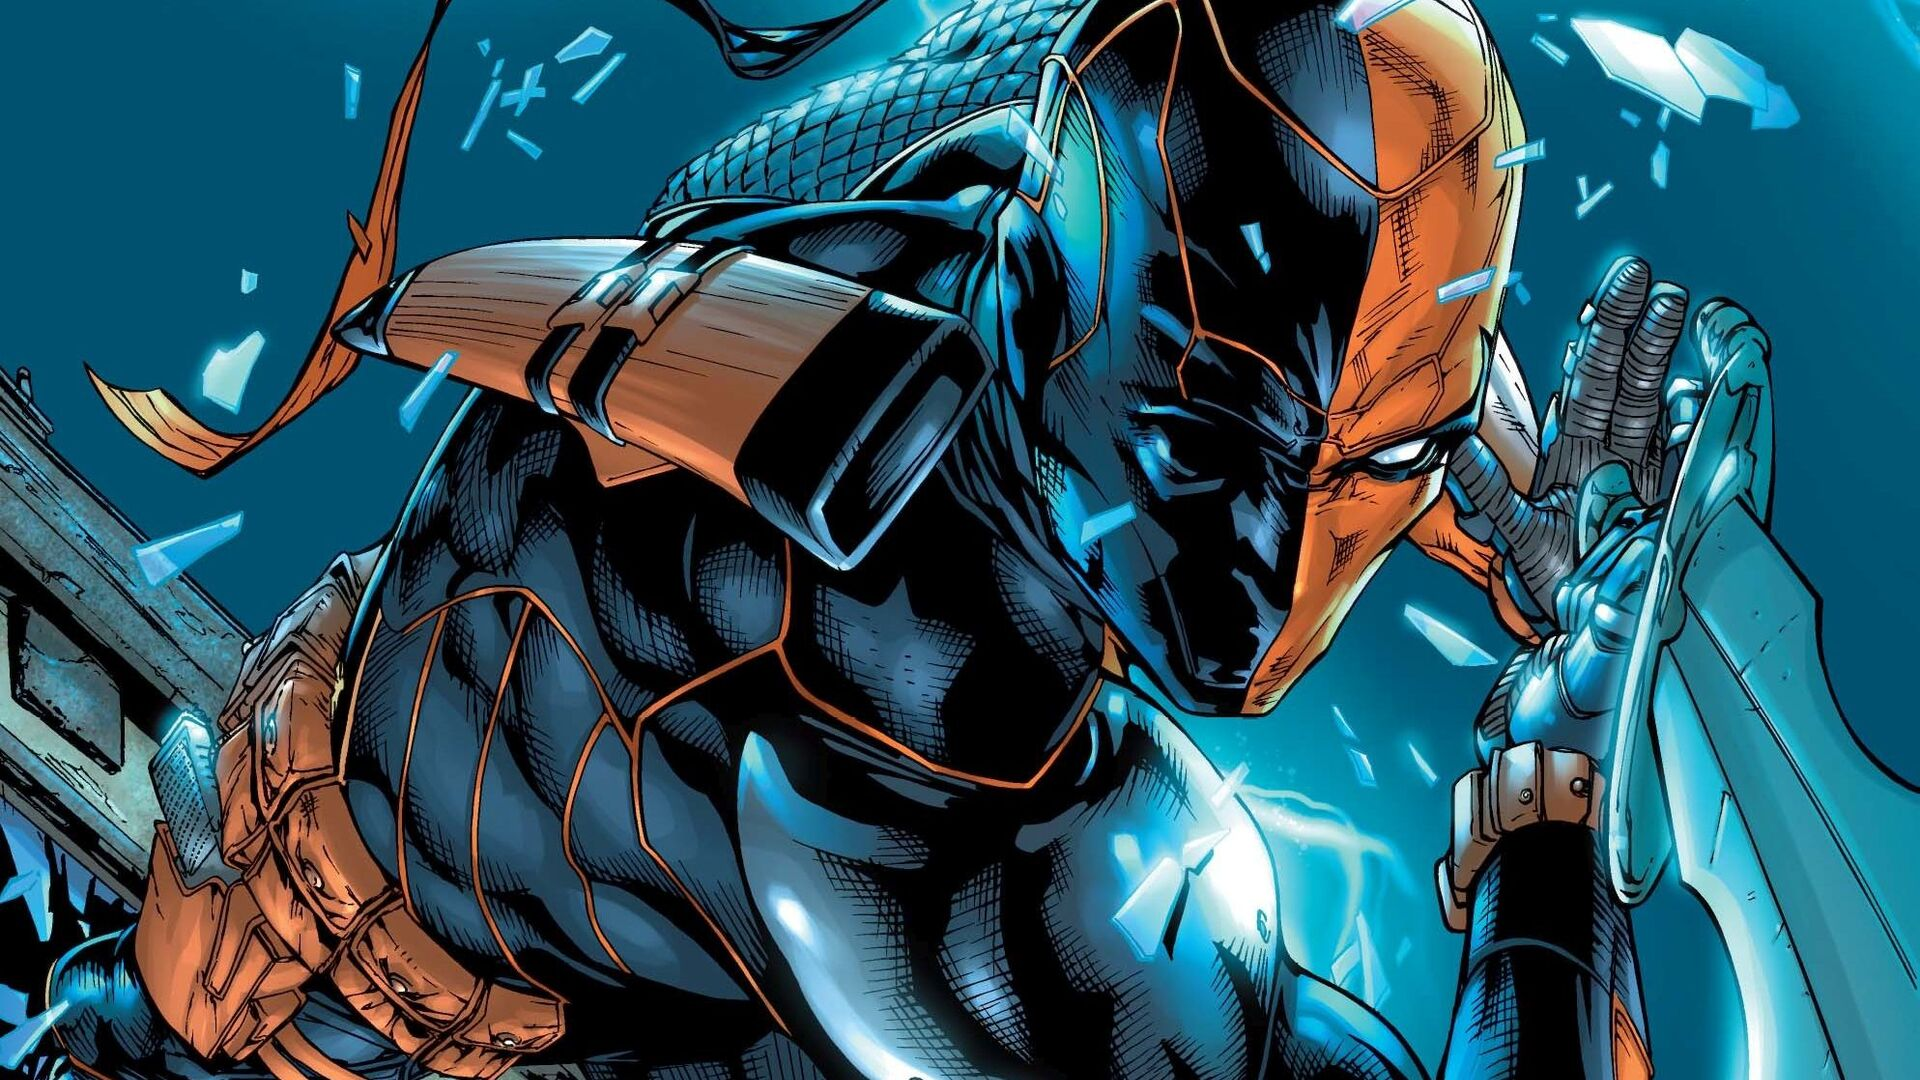 deathstroke-dc-comics-artwork-7n.jpg